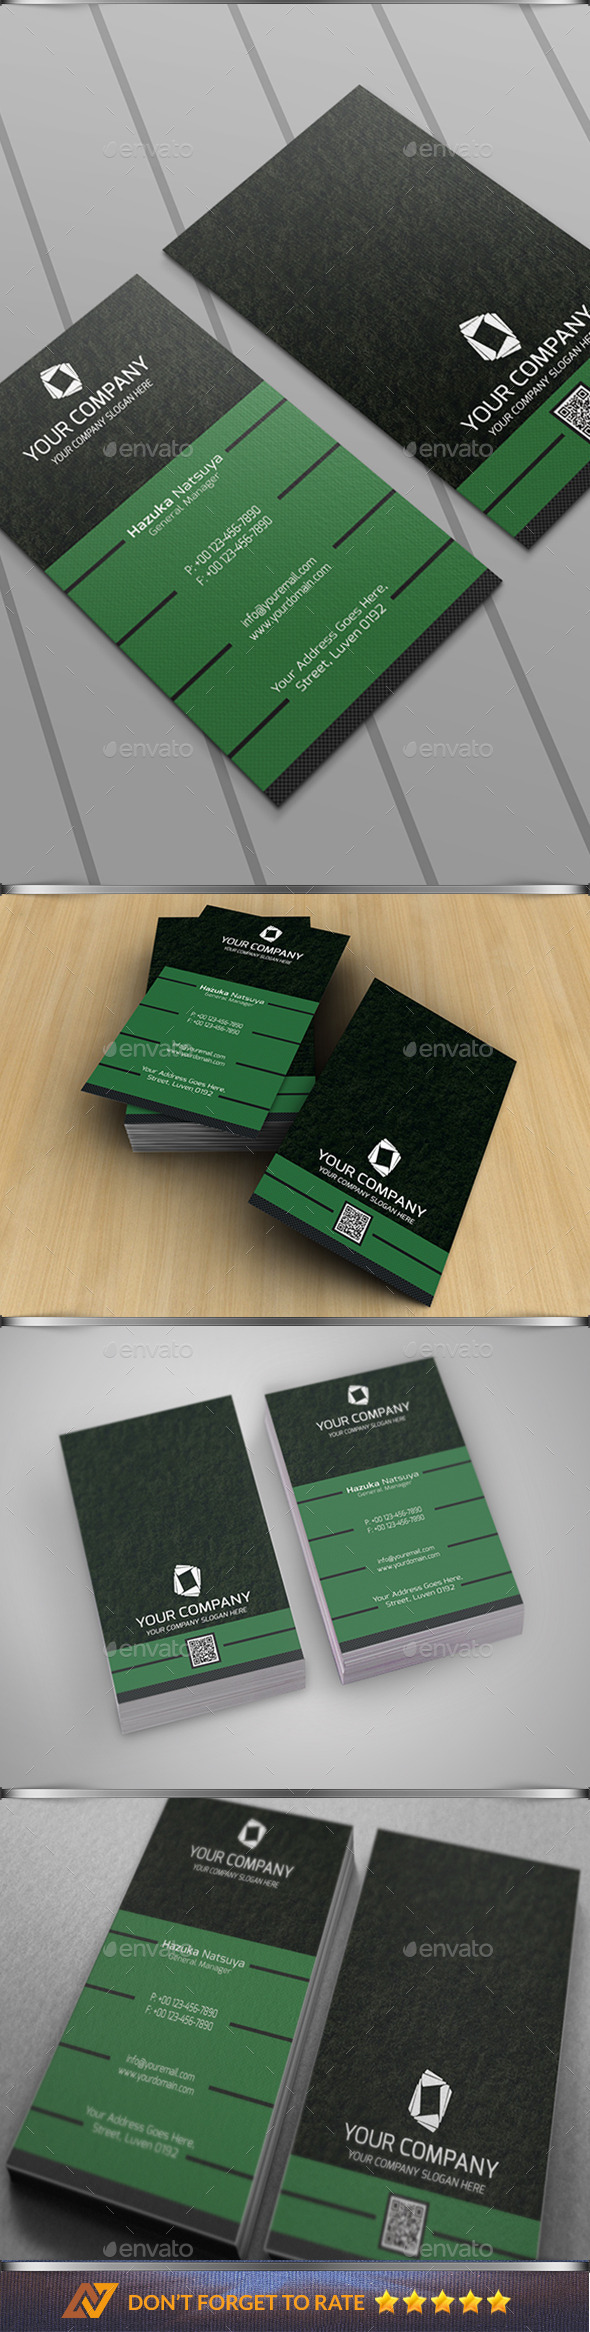 Modern Corporate Business Card Vol 2 - Business Cards Print Templates